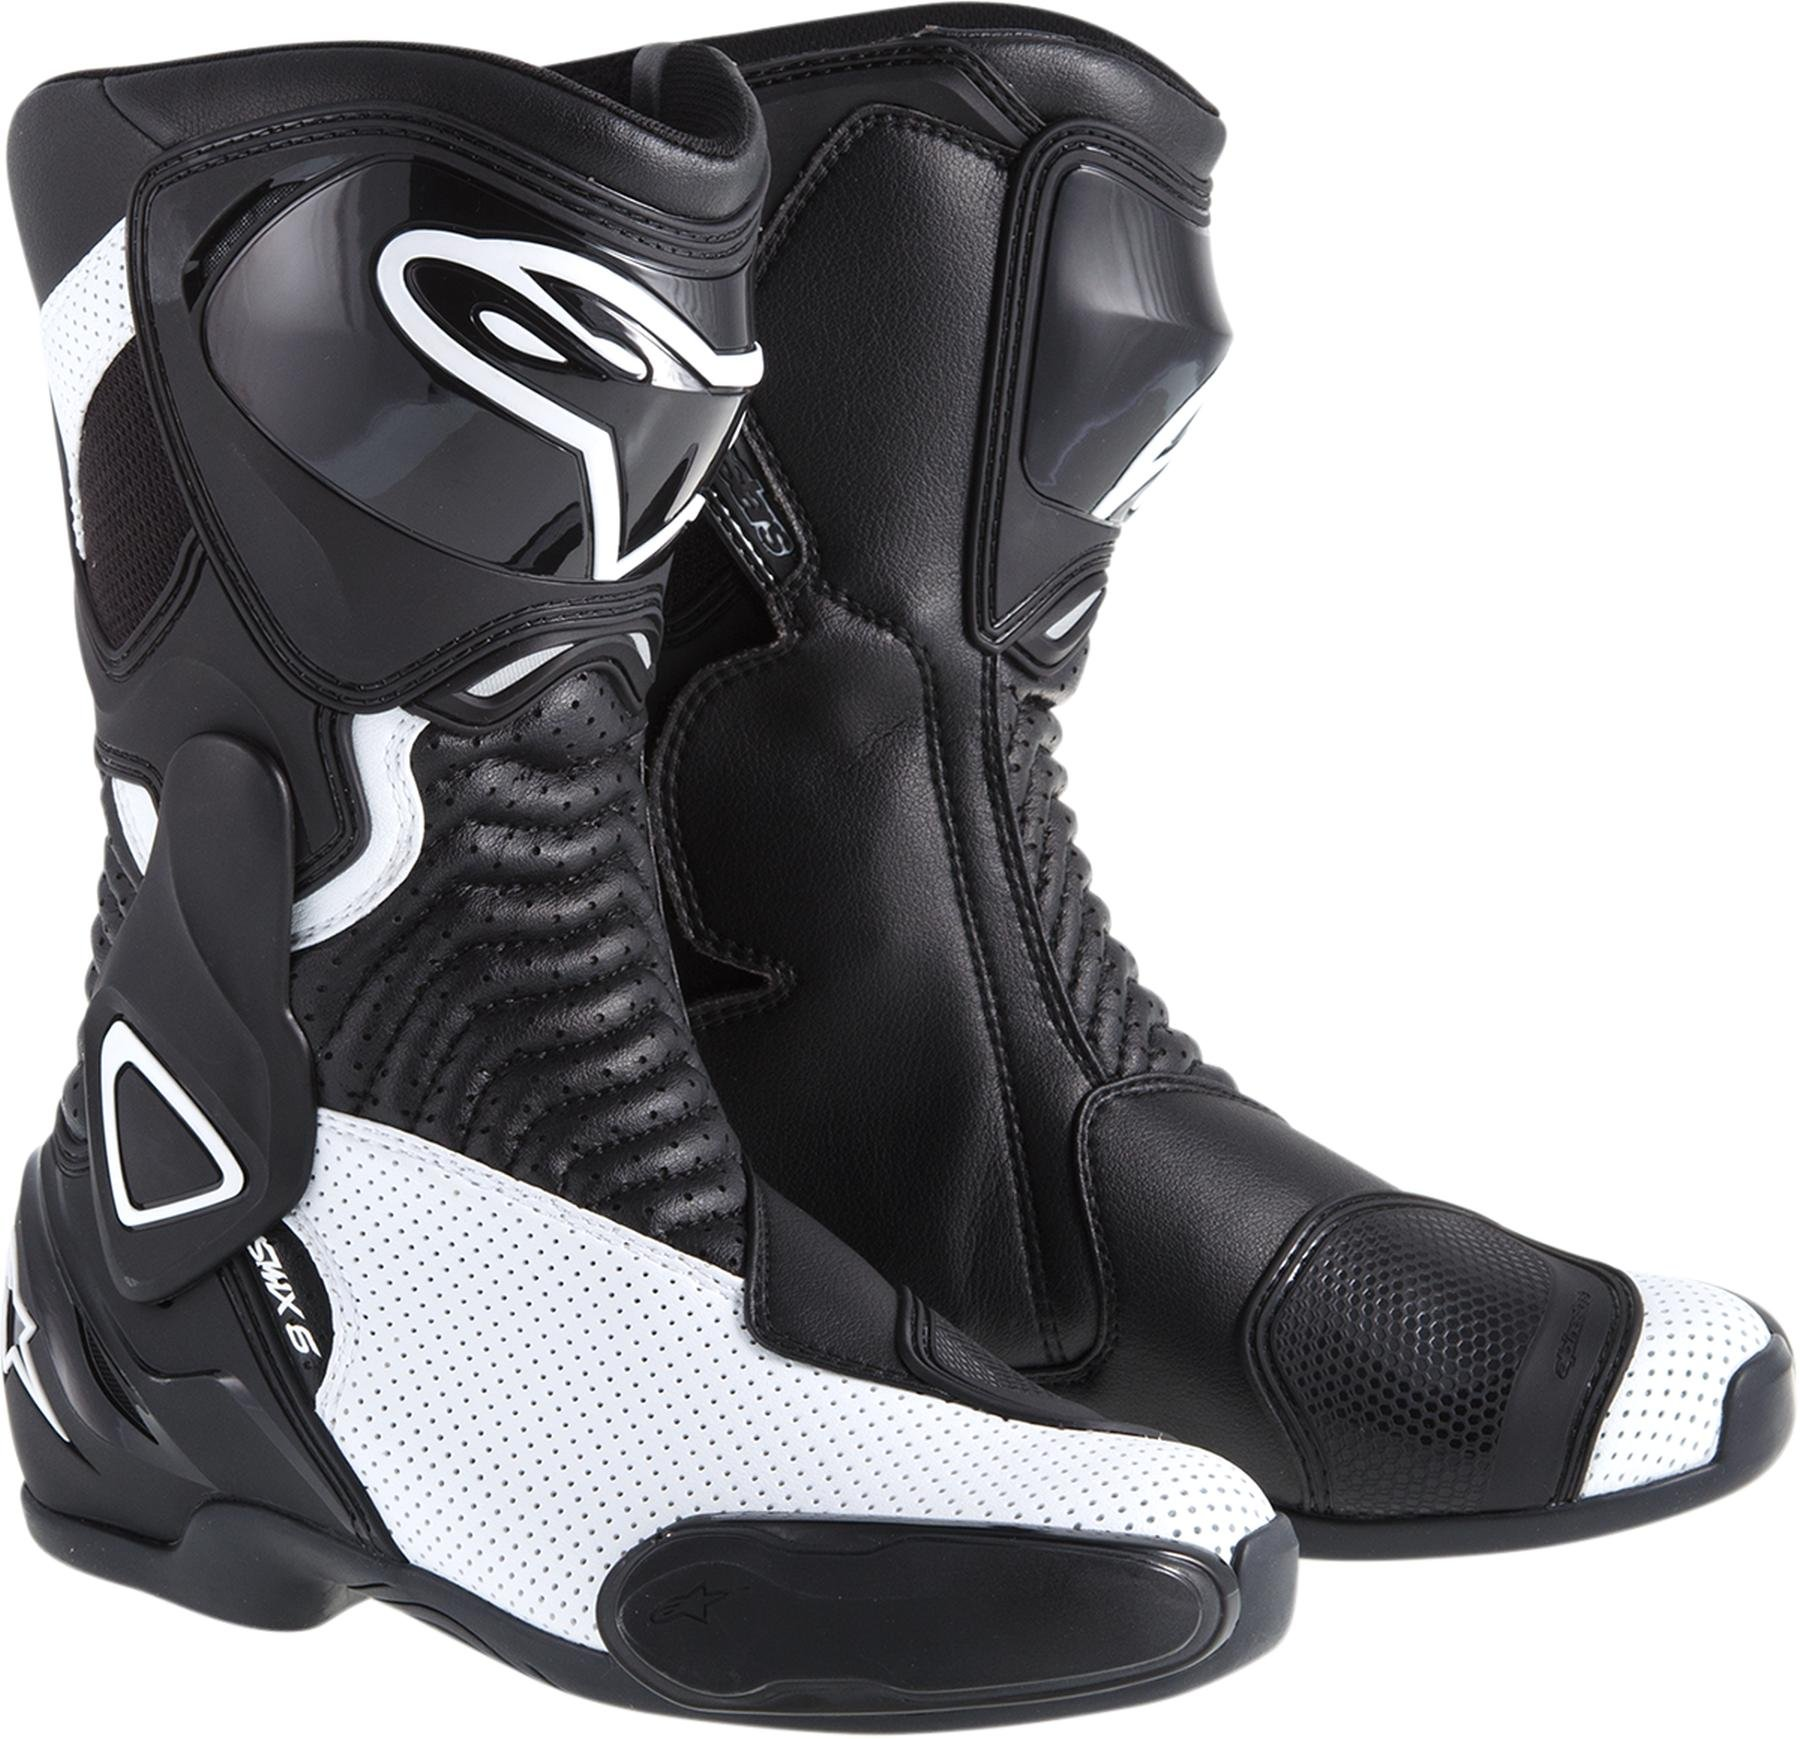 ALPINESTARS STELLA SMX-6 PERFORMANCE RIDING VENTED WOMENS SPORT-FIT BOOTS,BLACK/WHITE,EUR-36/US-5